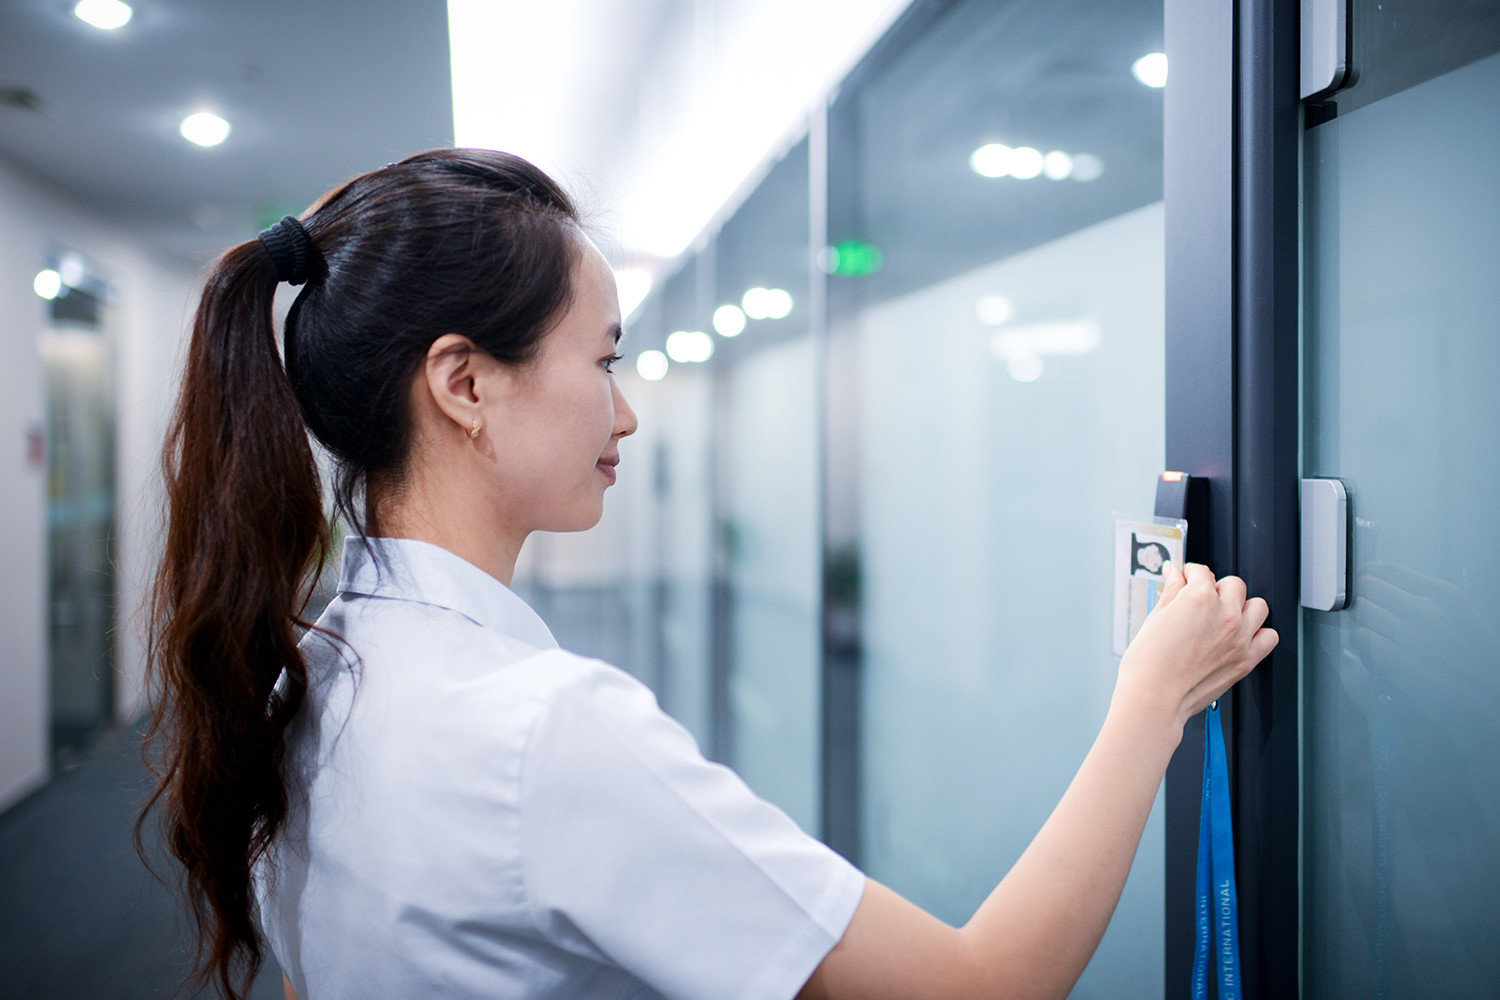 Healthcare Applications - Access Control in Healthcare|Australia CipherLab world leader in AIDC solutions